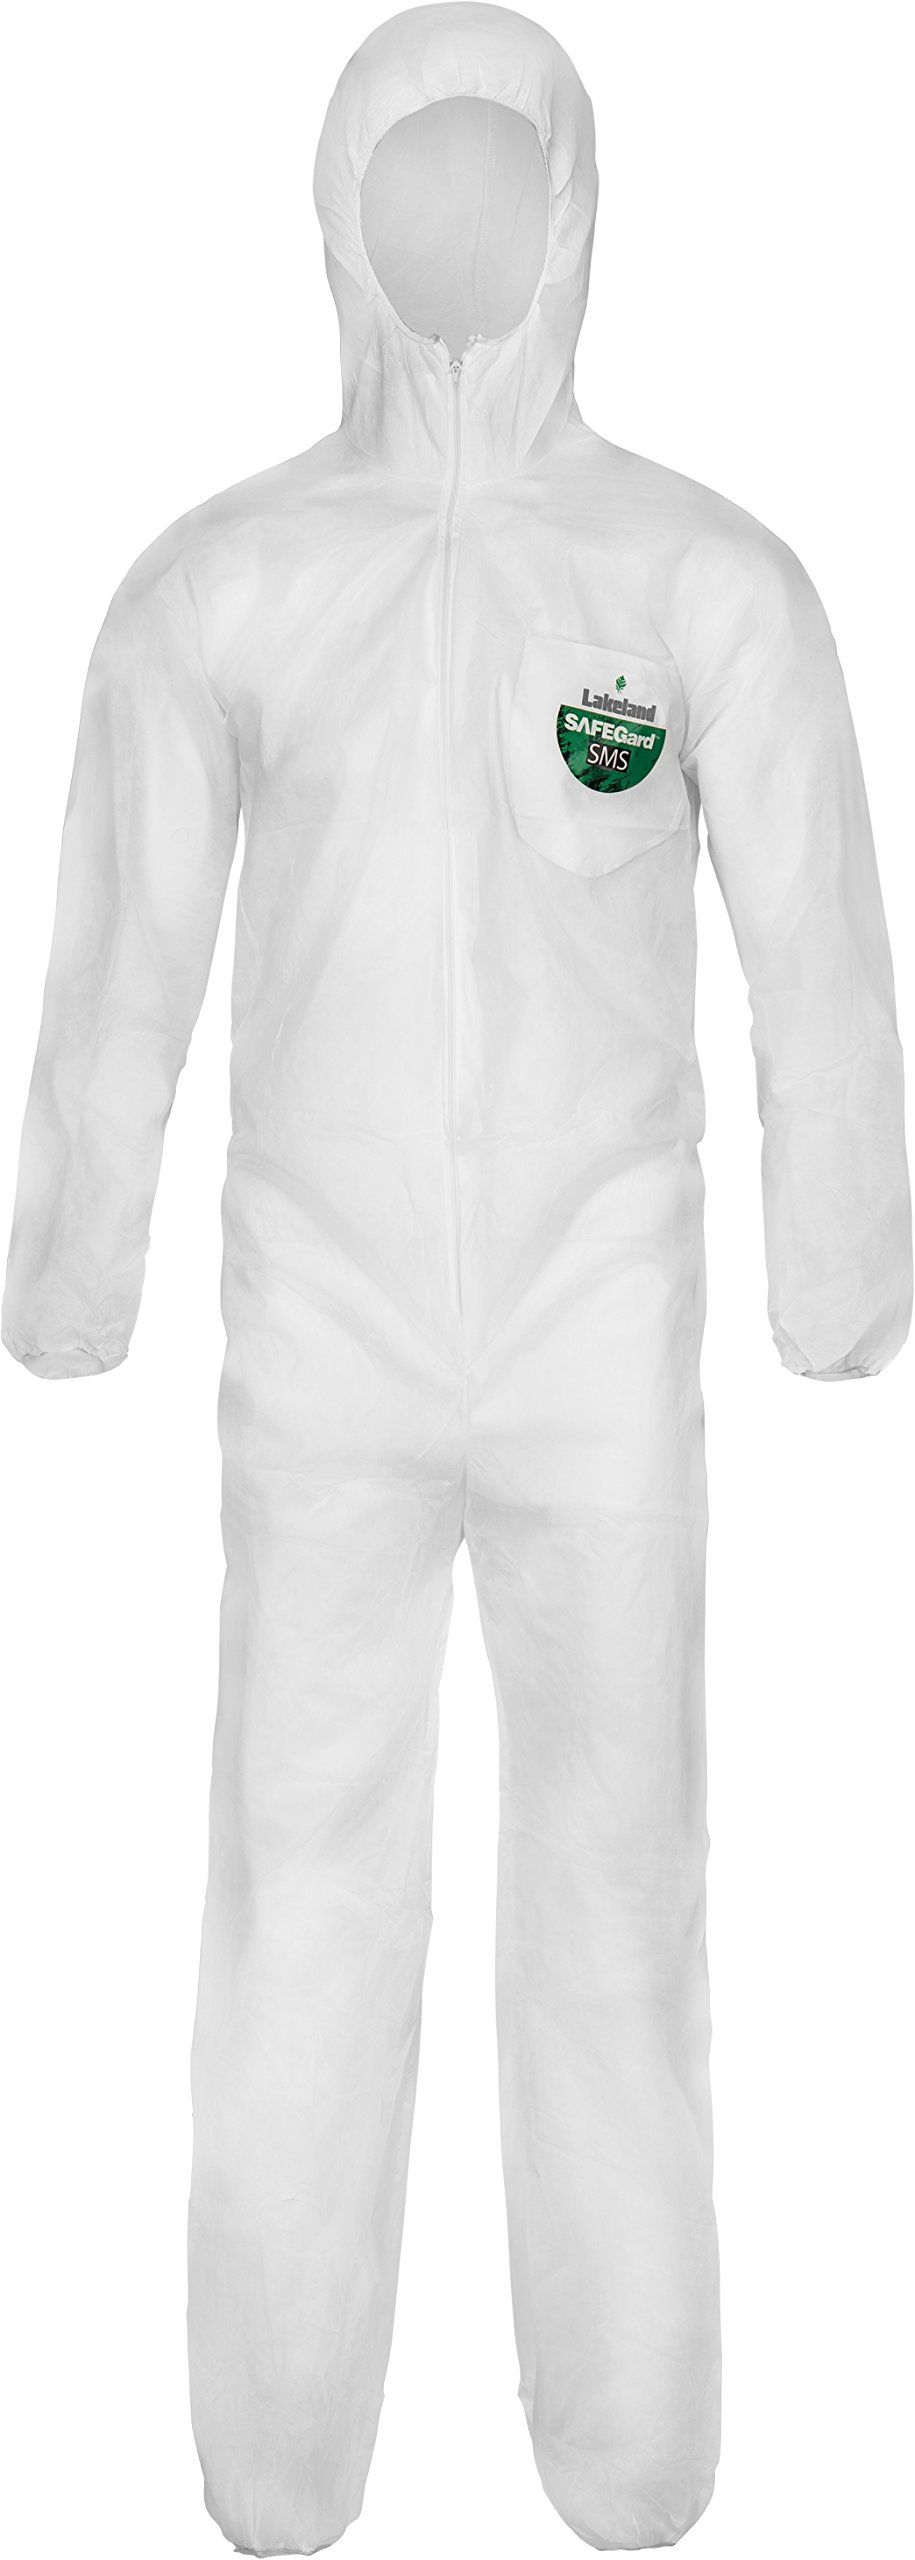 Lakeland SafeGard SMS Polypropylene Coverall with Hood, Disposable, Elastic Cuff, Large, White (Case of 25)